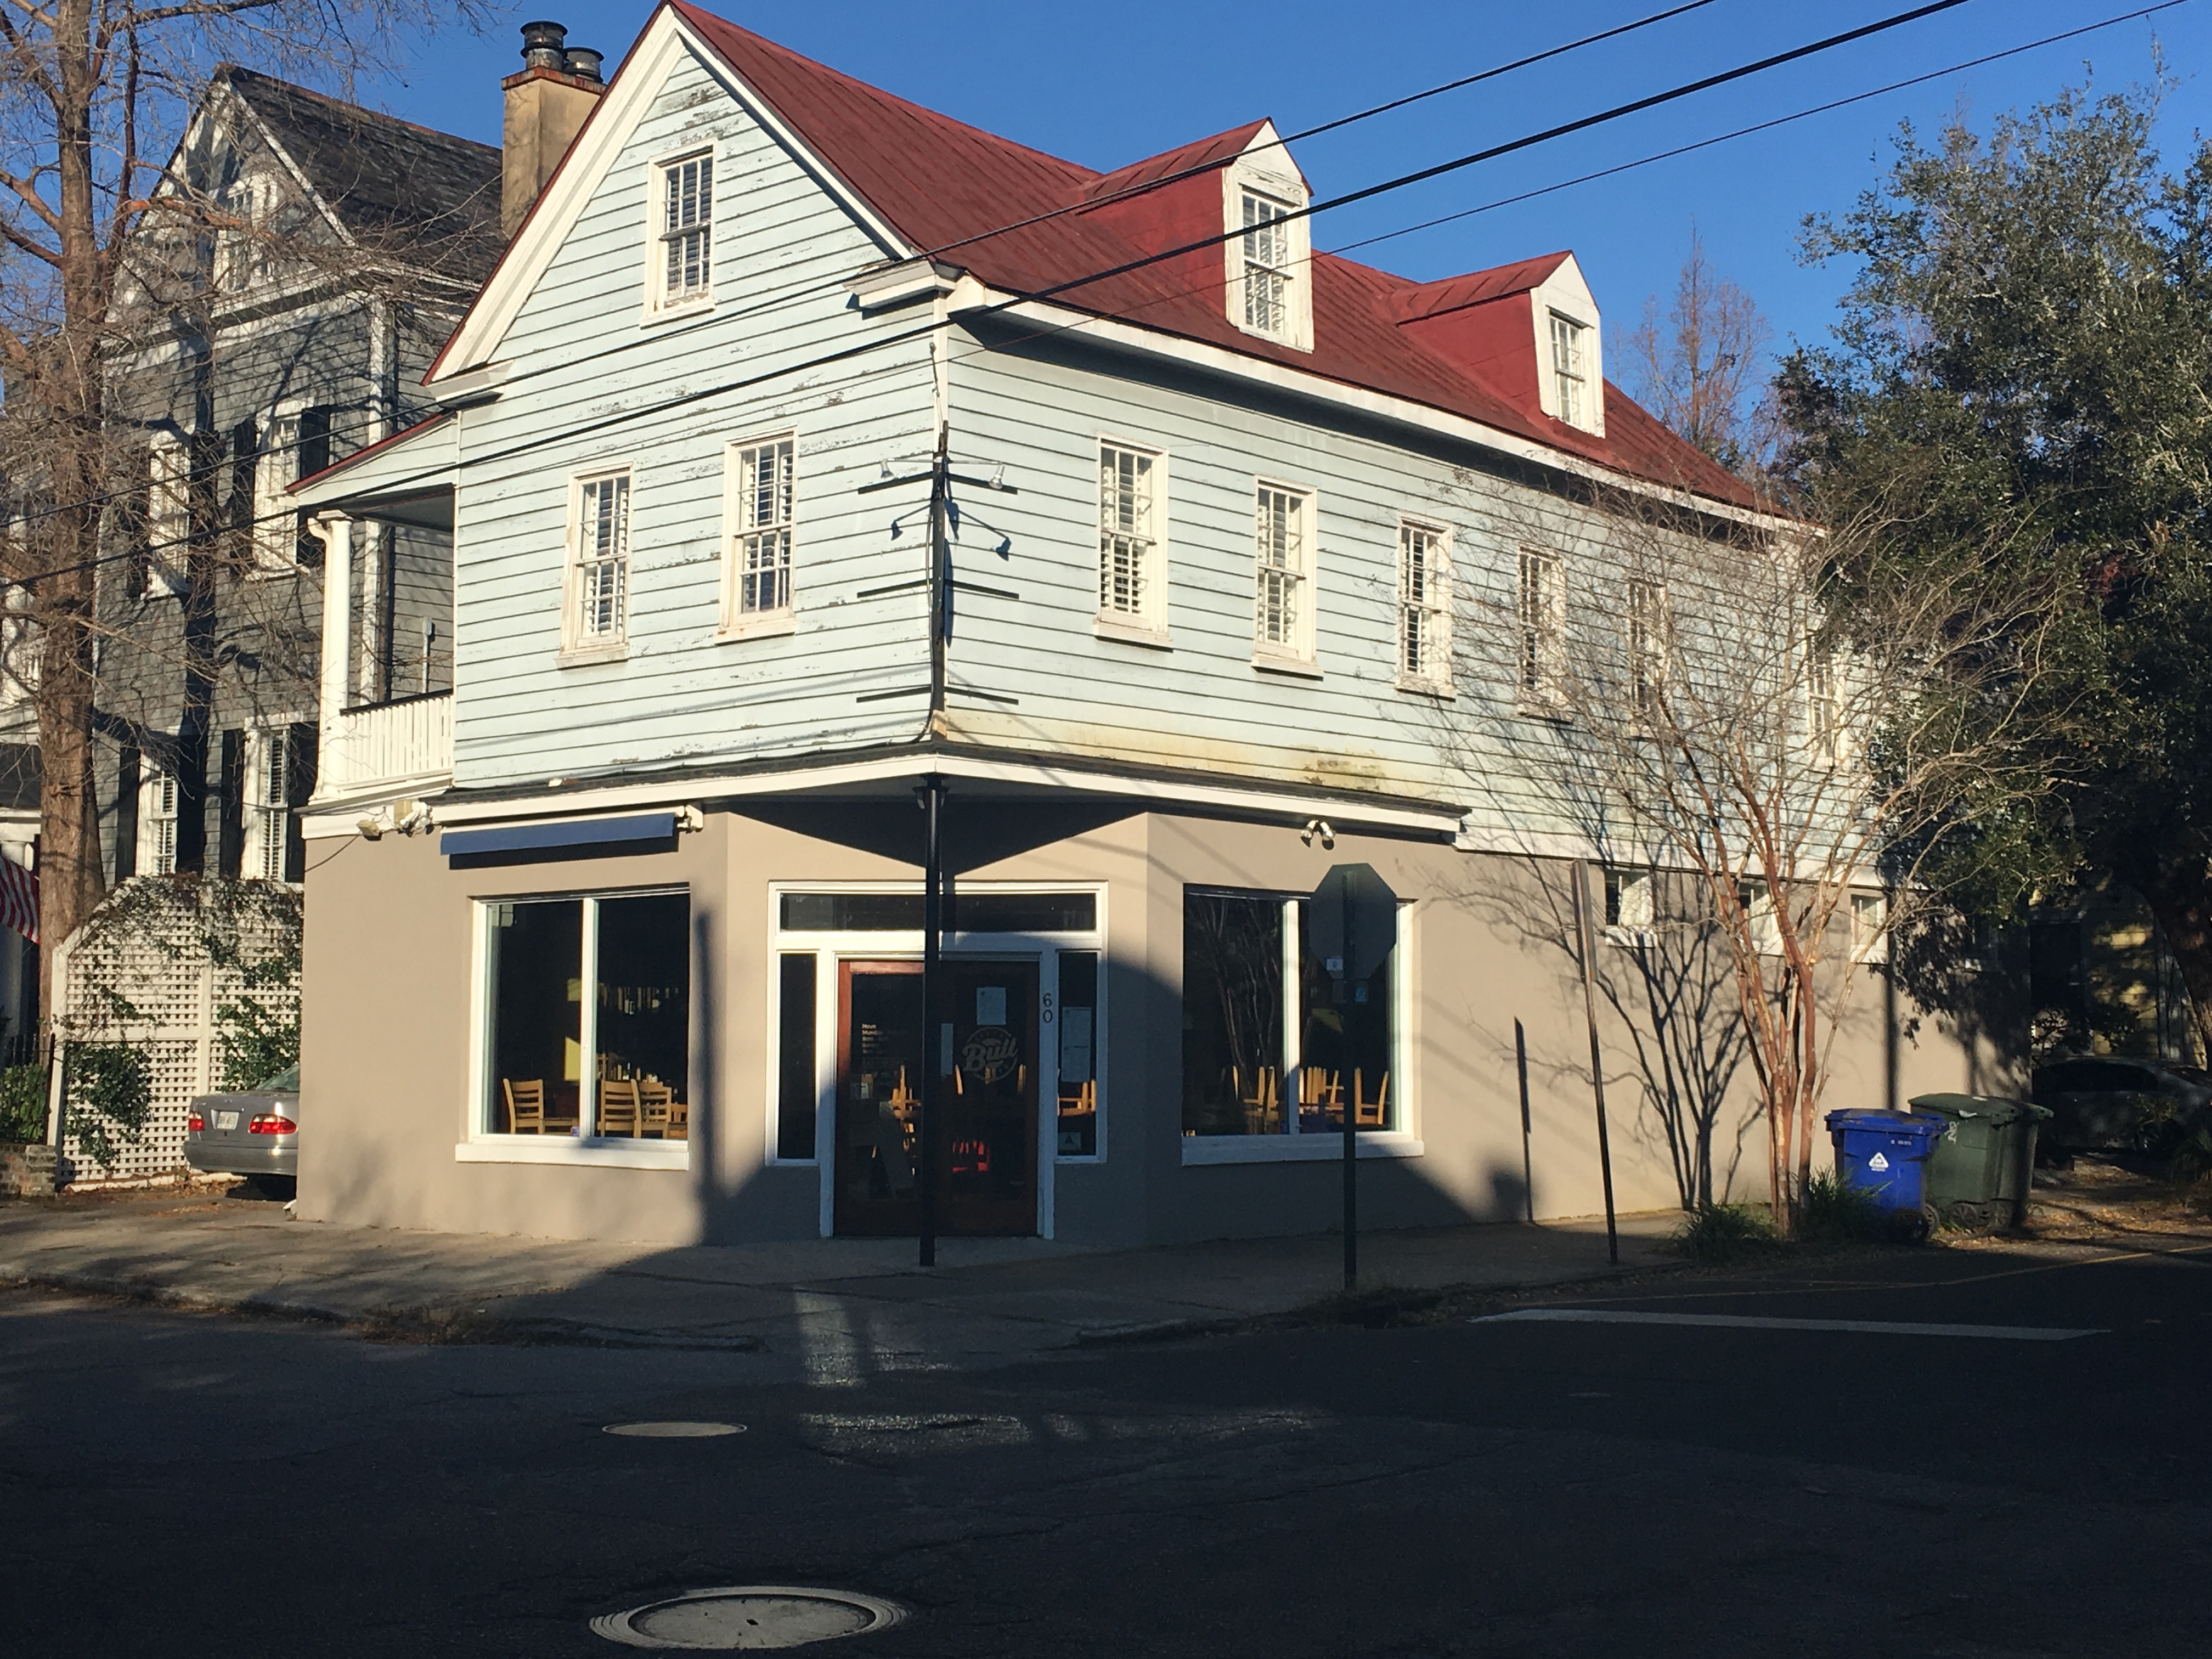 60 Bull Cafe Opens For Lunch With Tortas, Grilled Cheeses, and Po' Boys